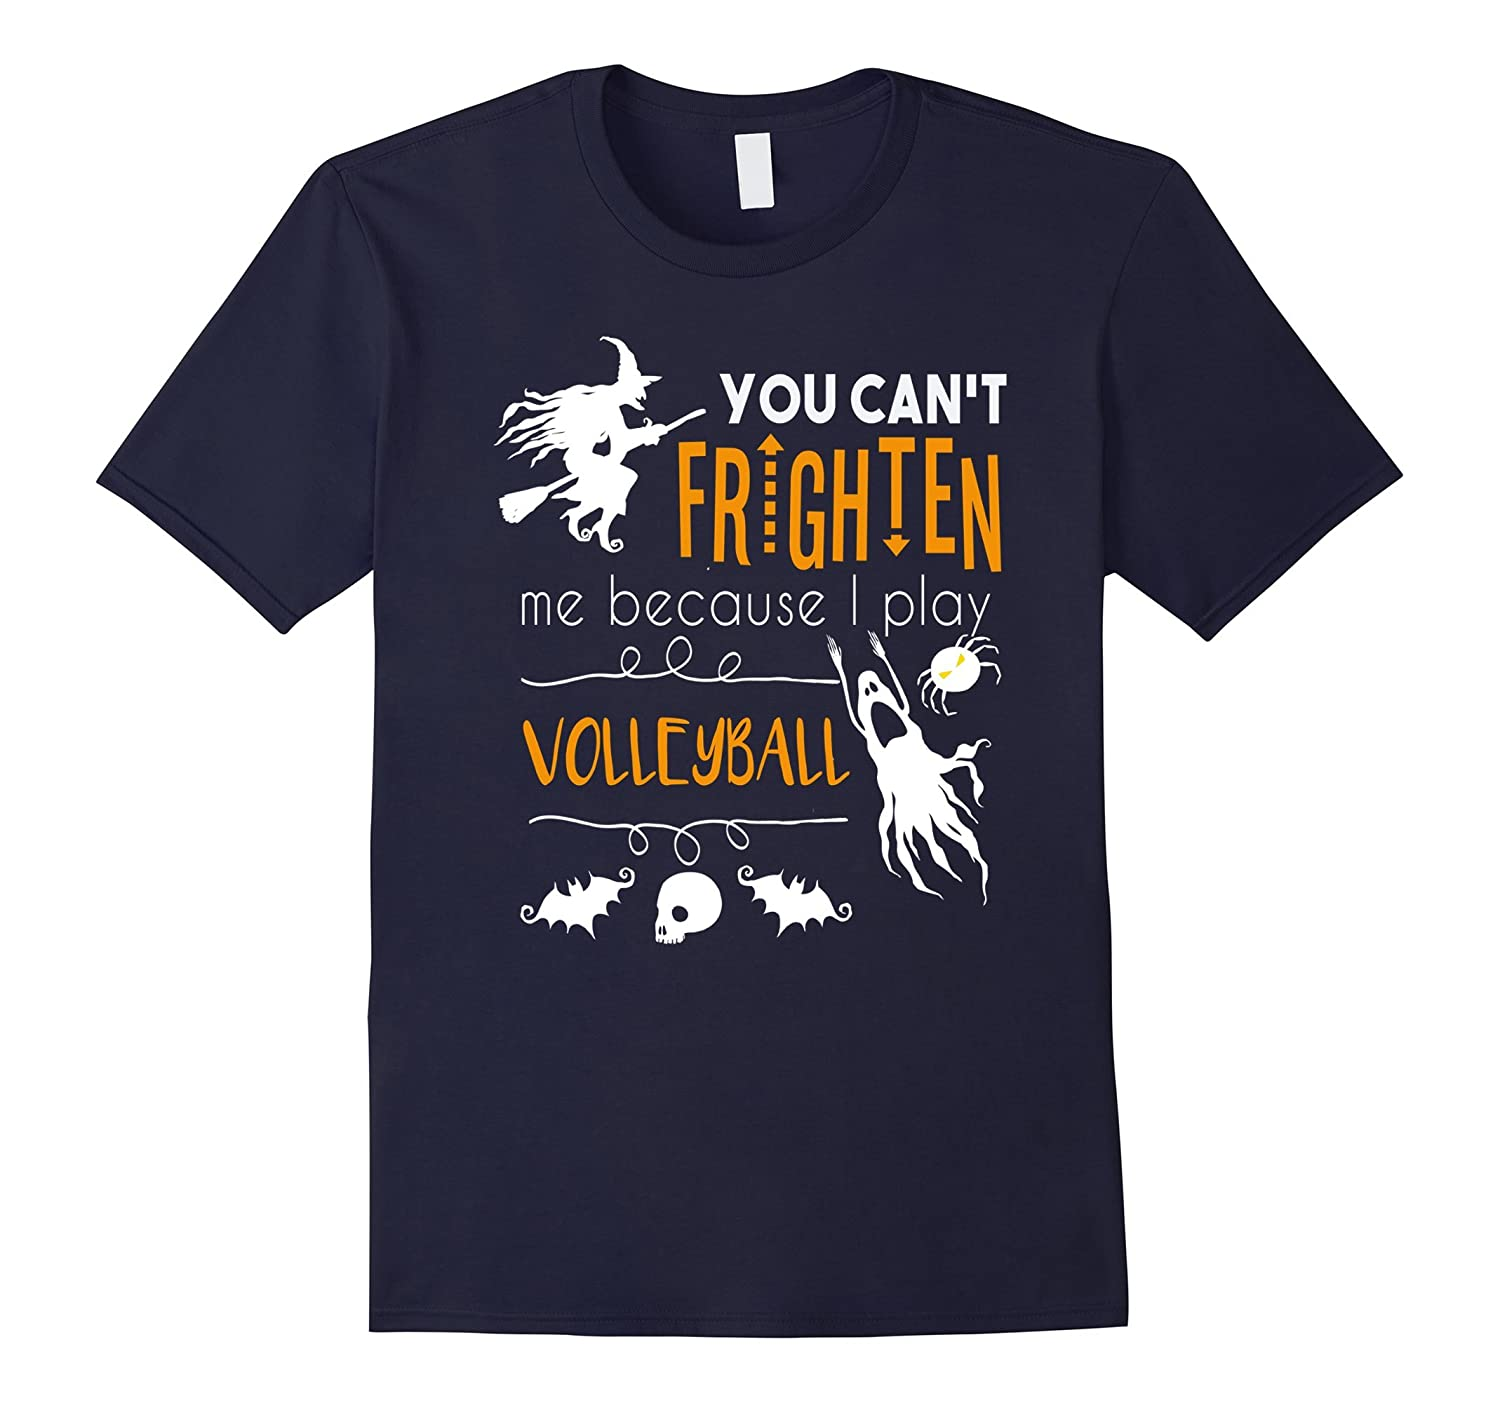 You can't frighten me volleyball sports Halloween t-shirt-CL